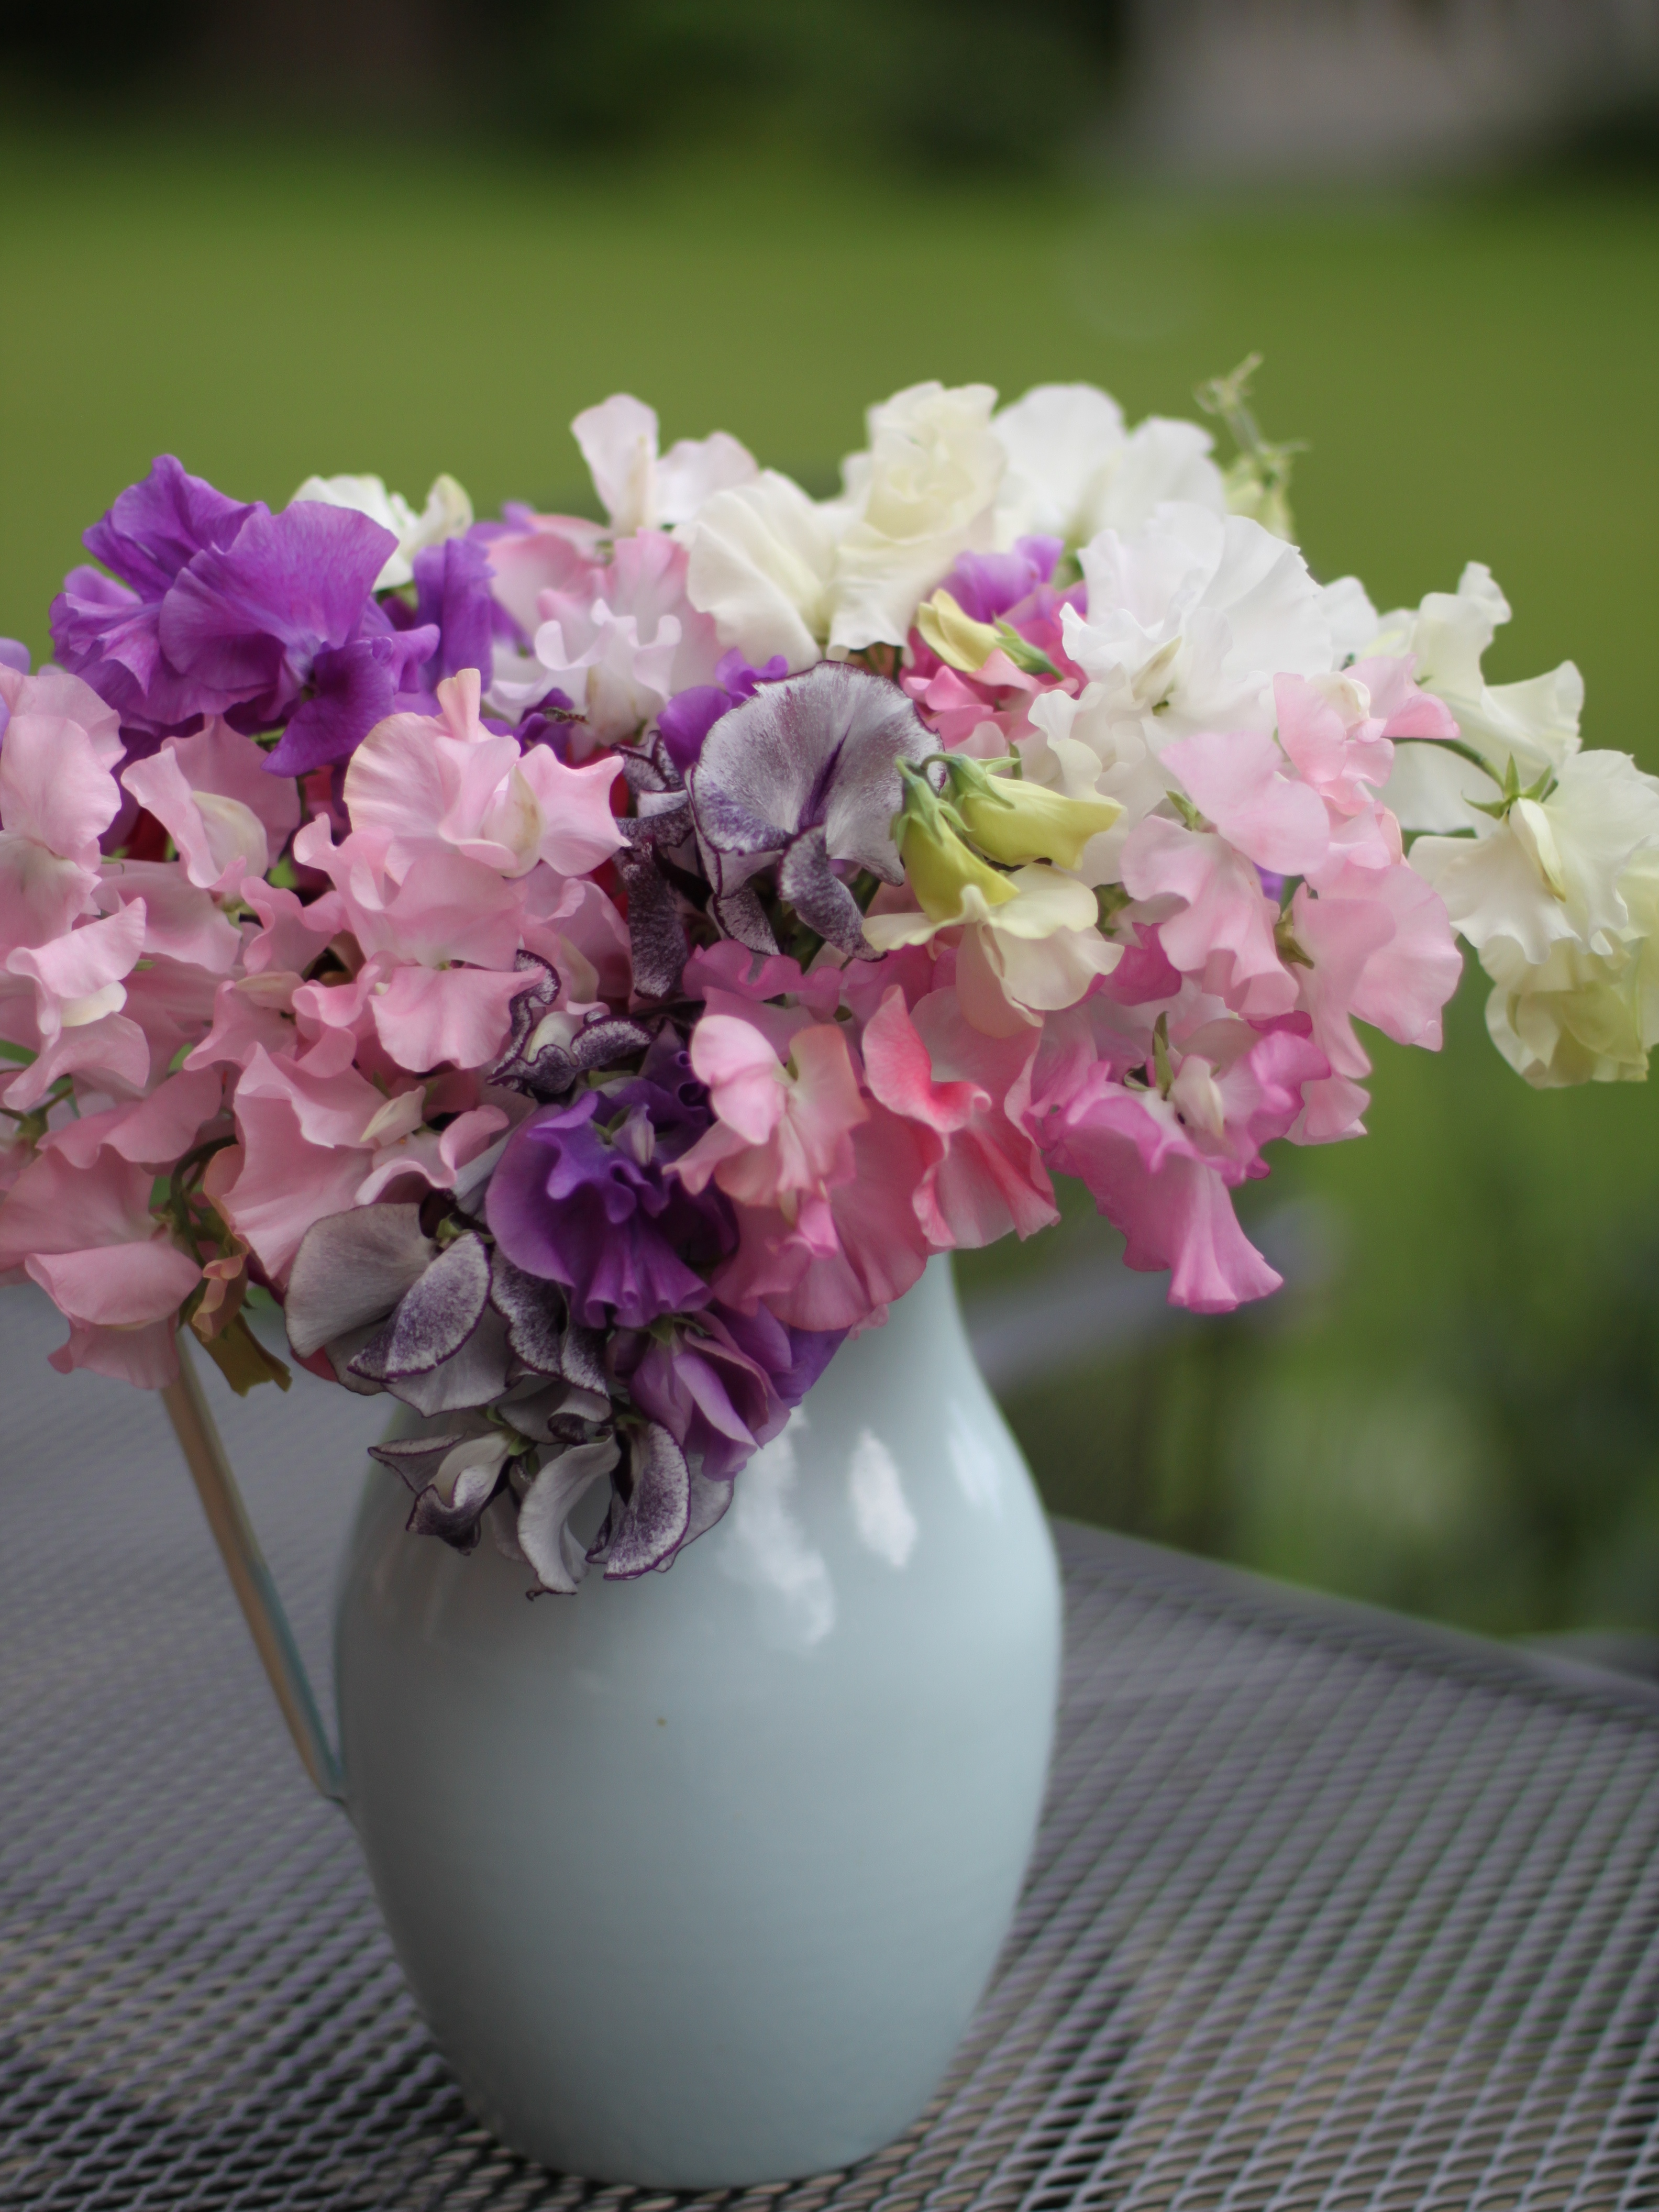 In a vase on monday sweet peas rosesindulging floral passions sweet peas reviewsmspy